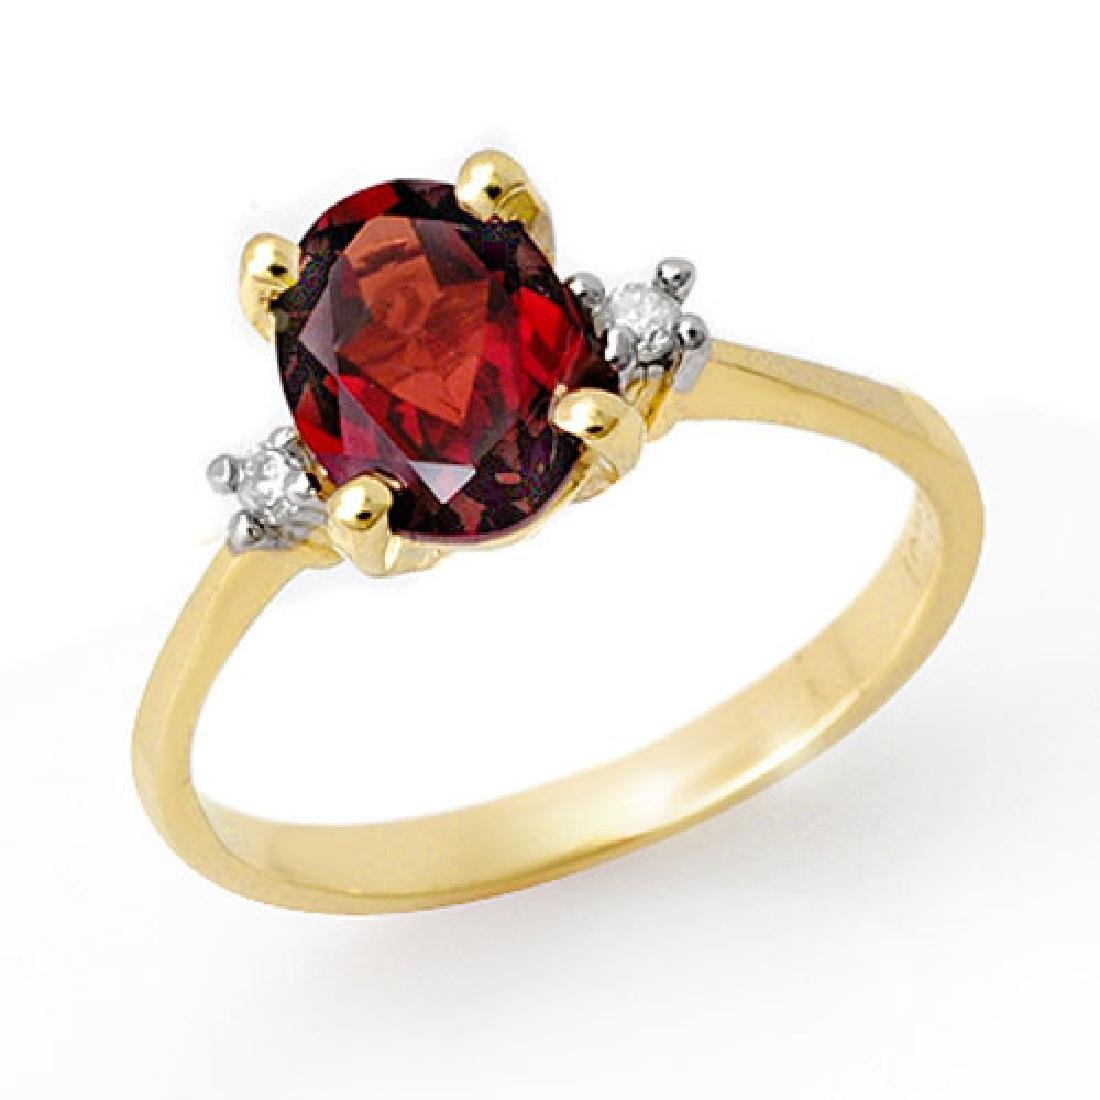 1.54 CTW Garnet & Diamond Ring 10K Yellow Gold